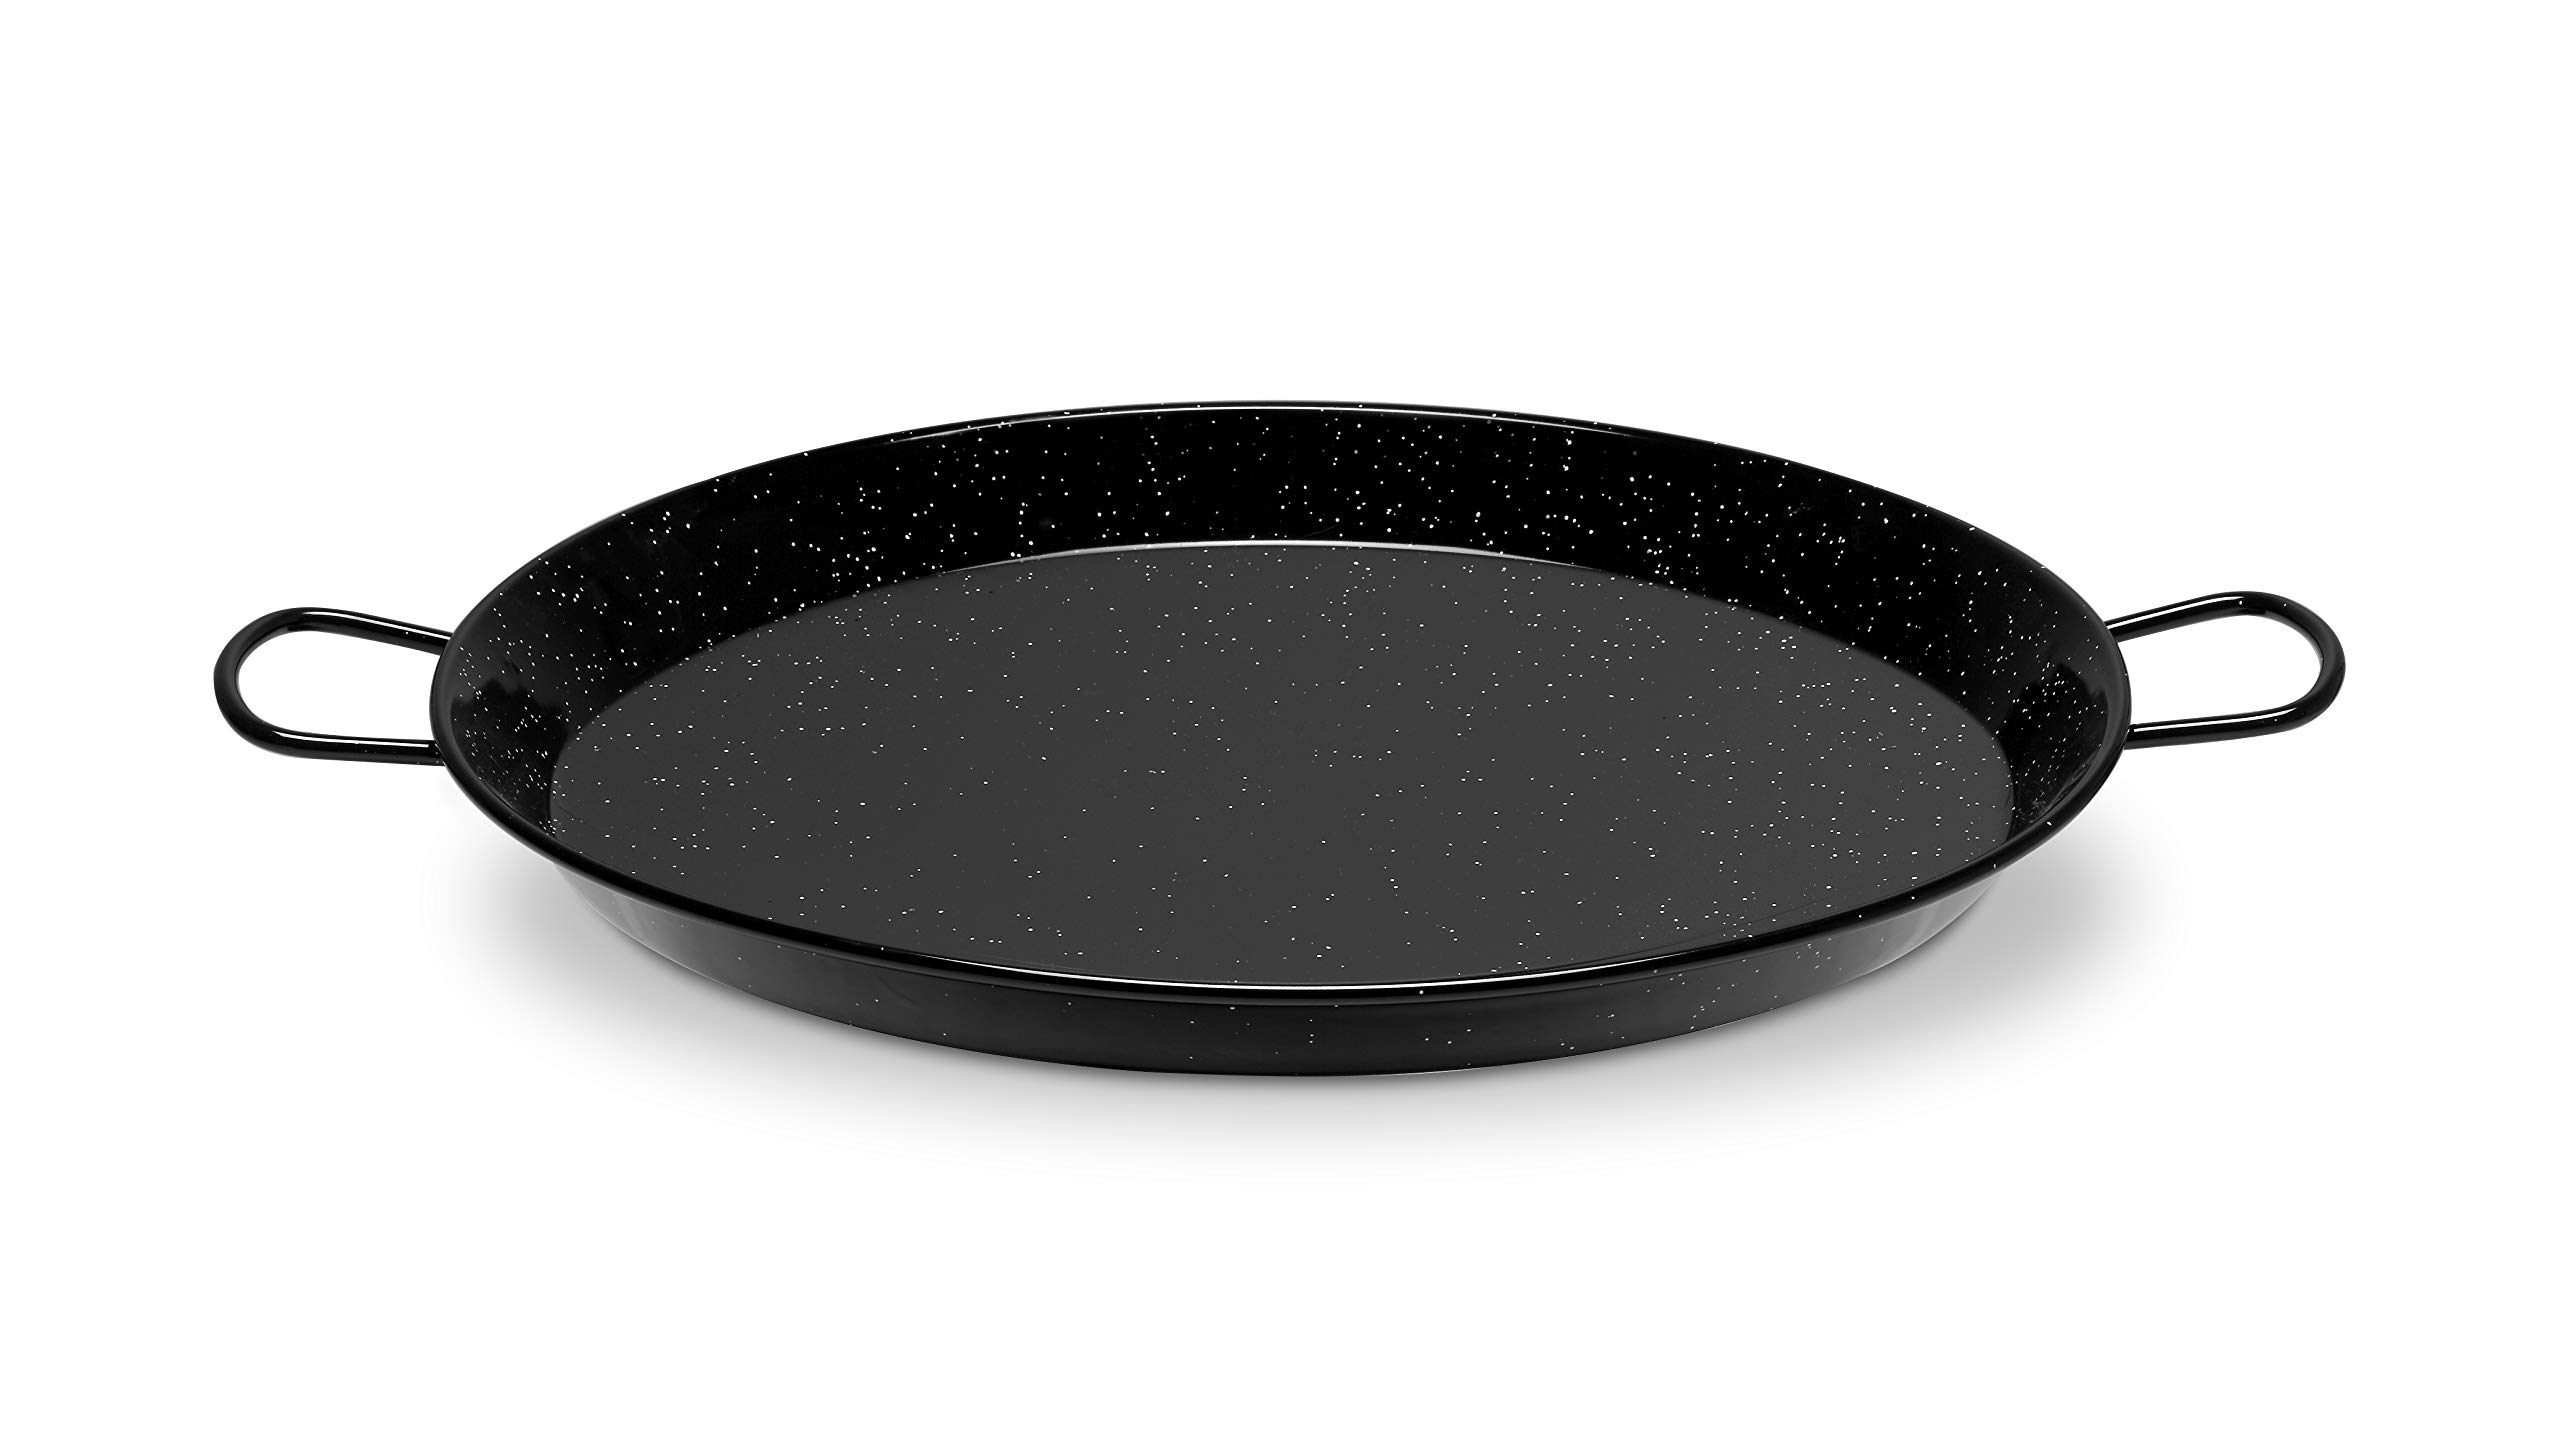 Paella Pan Enamelled Carbon Steel 22 Inches/55cm/up to 16 Servings by Castevia Imports Vaello